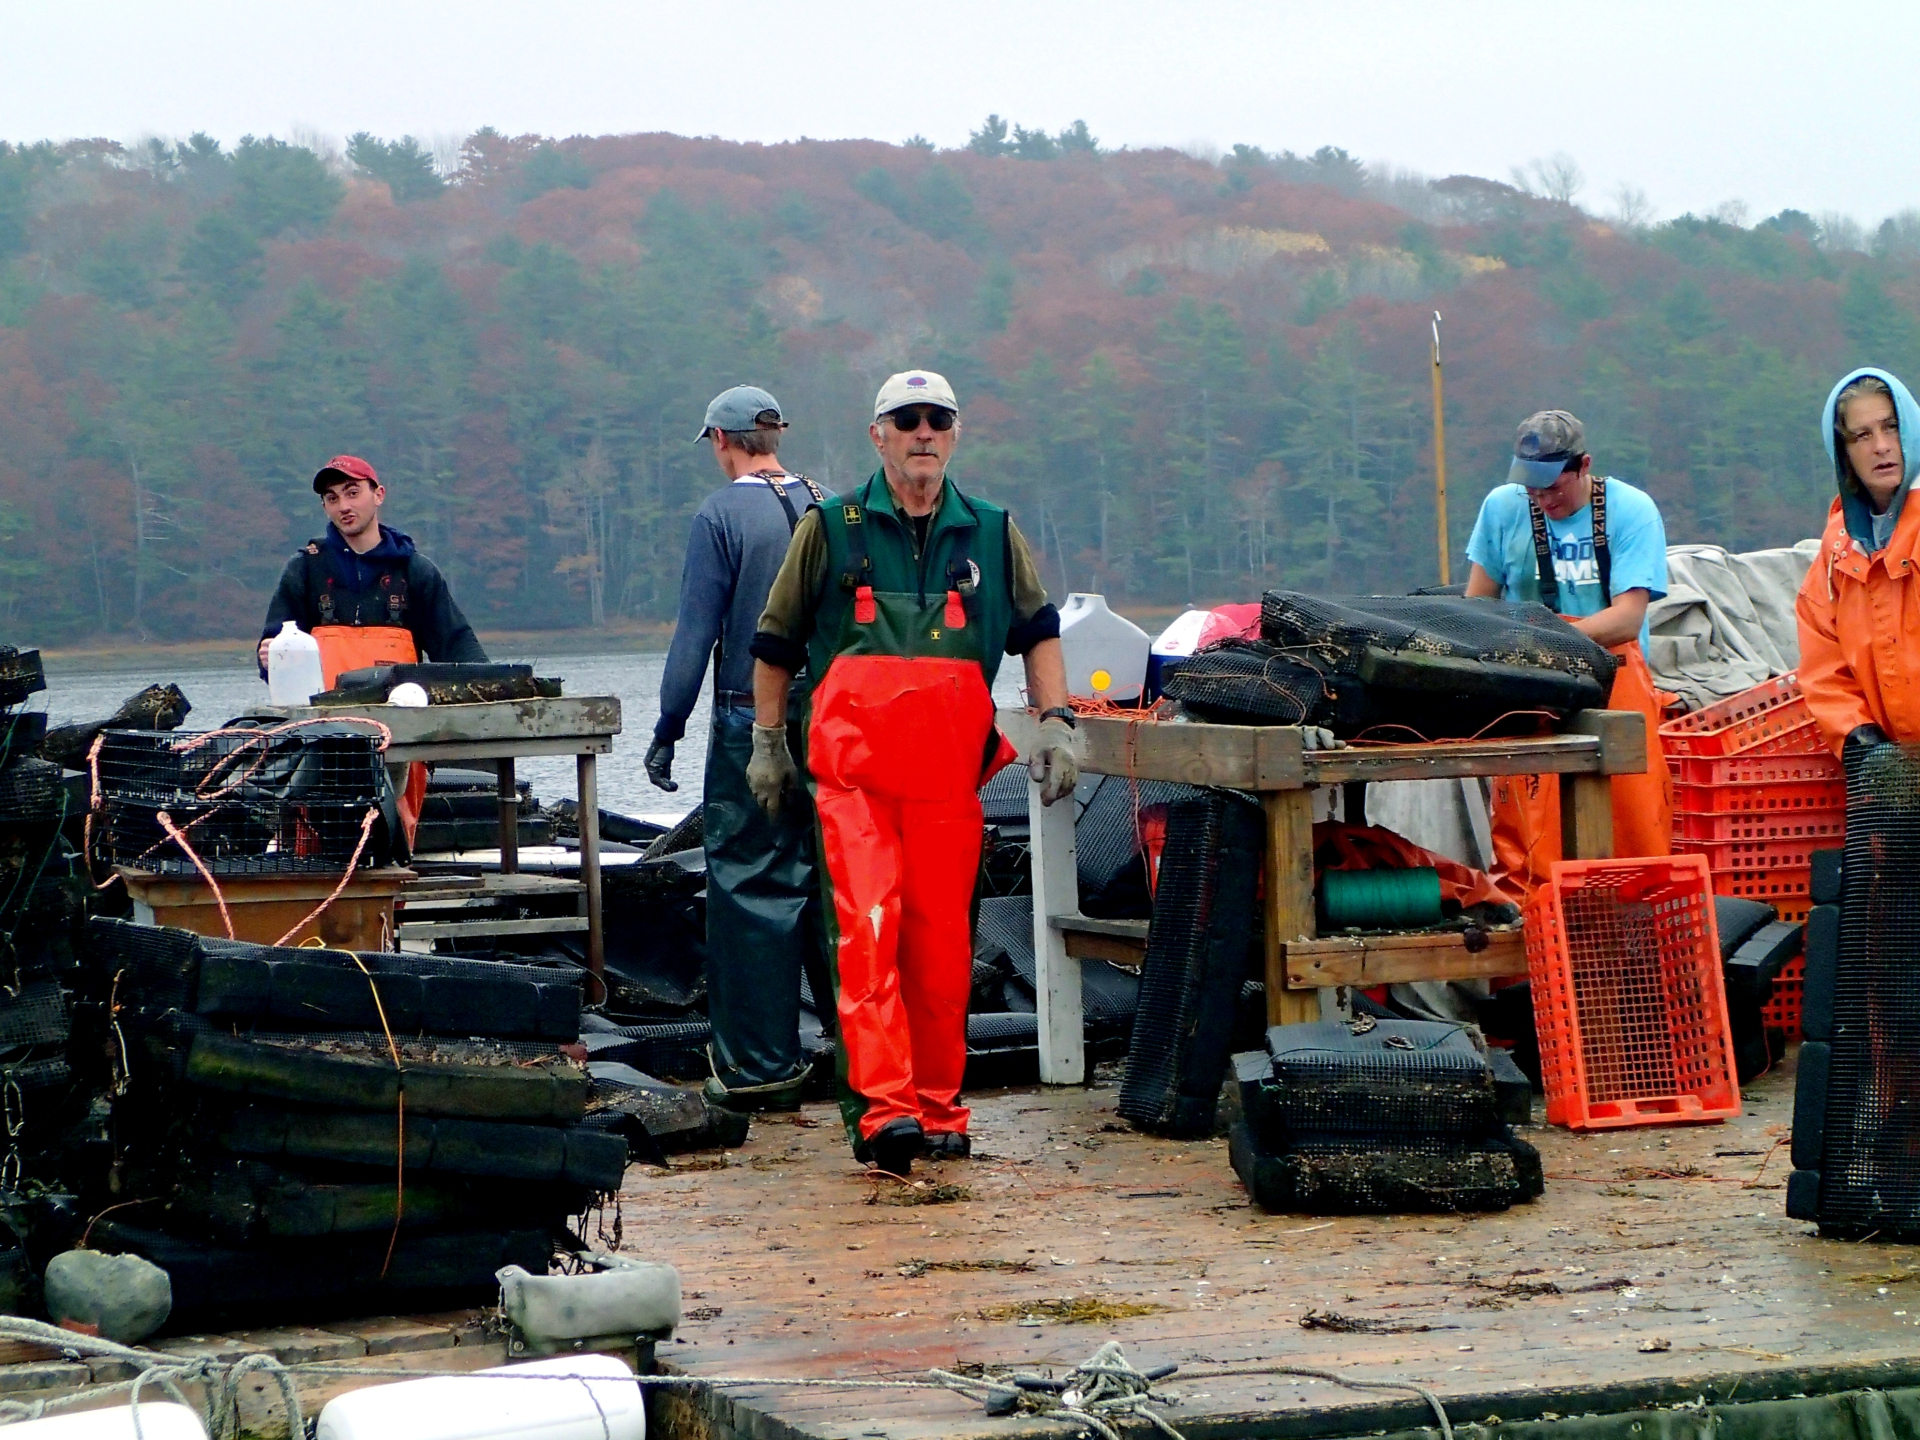 Muscongus Bay Aquaculture and Dodge Cove Marine Farm